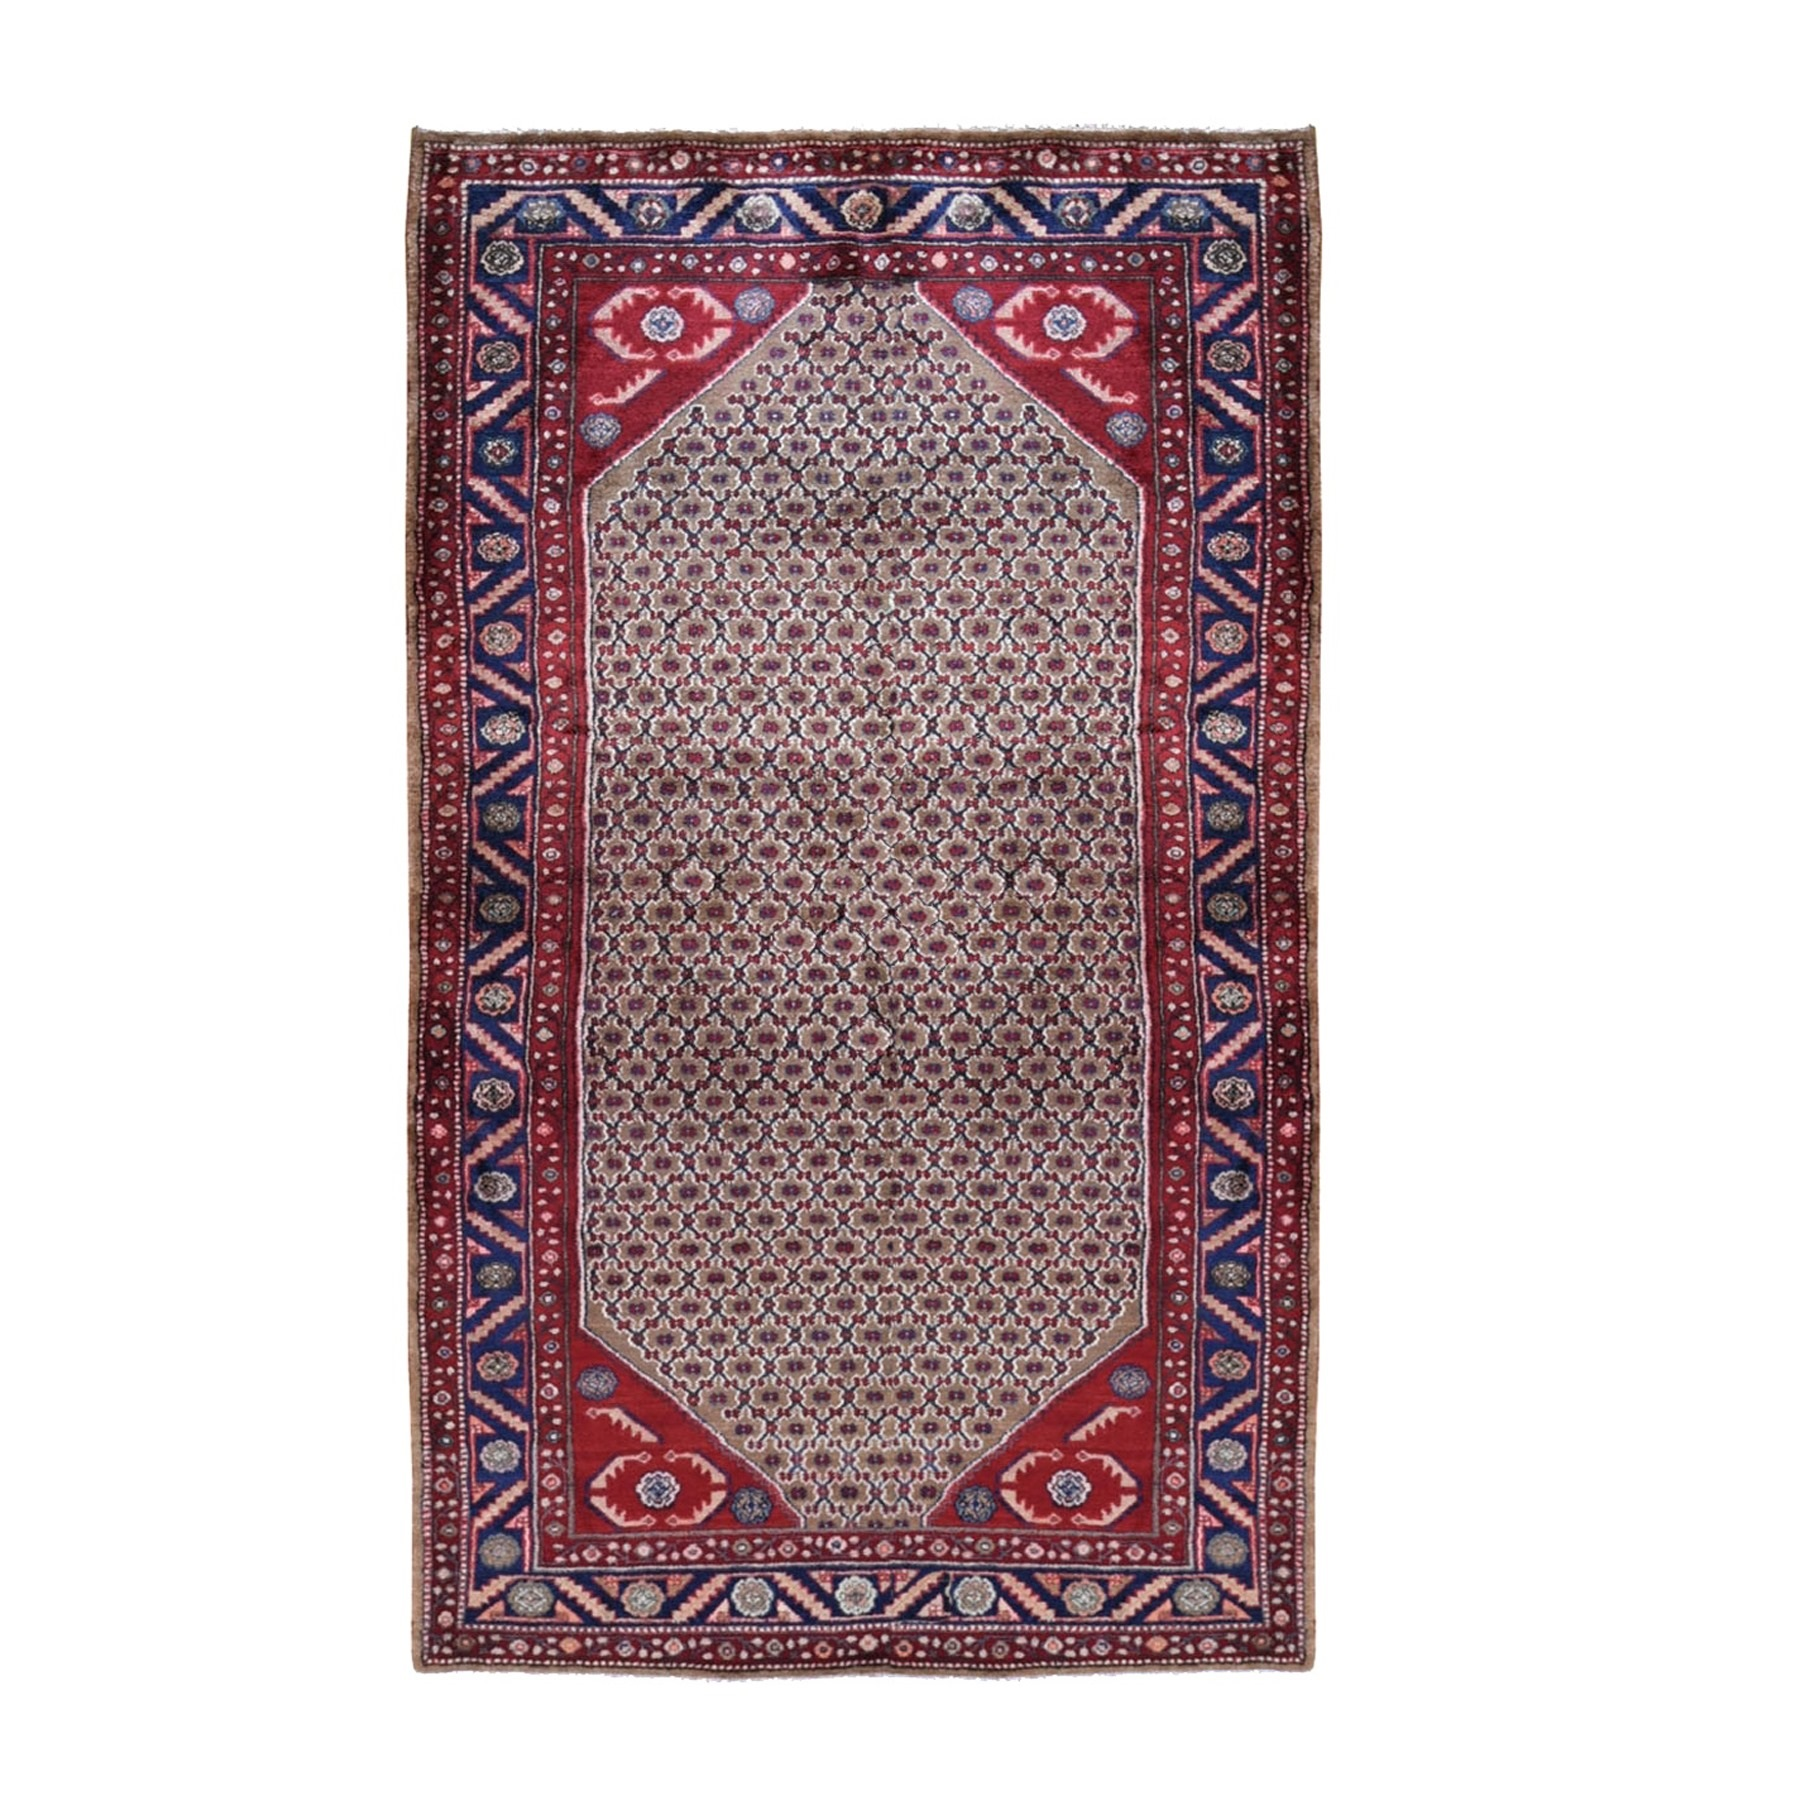 "5'x9'6"" Gallery Size Mocha New Persian Serab Camel Hair Full Pile Pure Wool Hand Woven Oriental Rug"